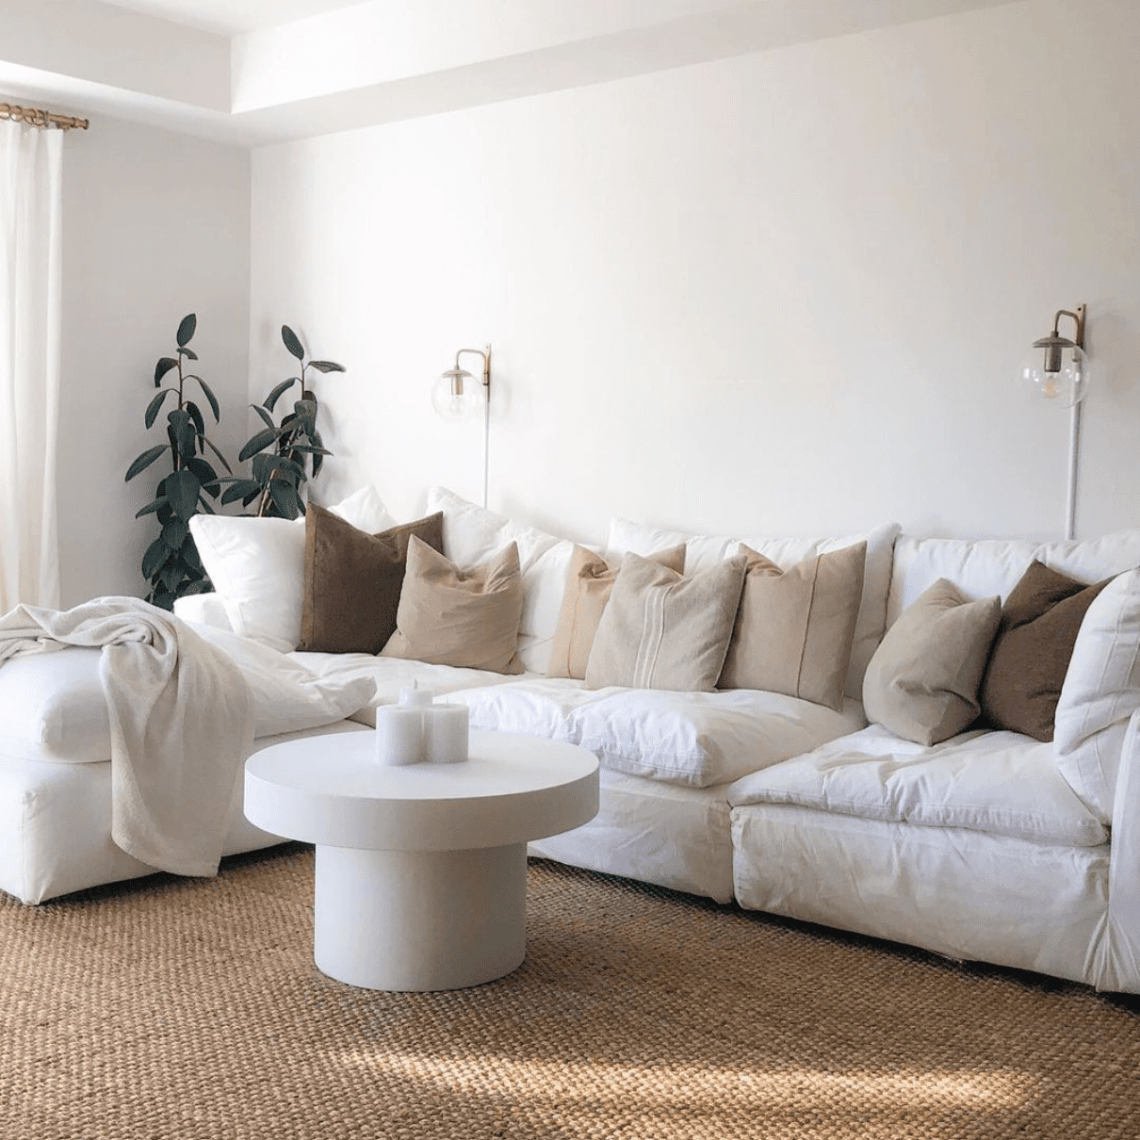 20 Modern Apartment Decor Ideas To Suit Any Size Space